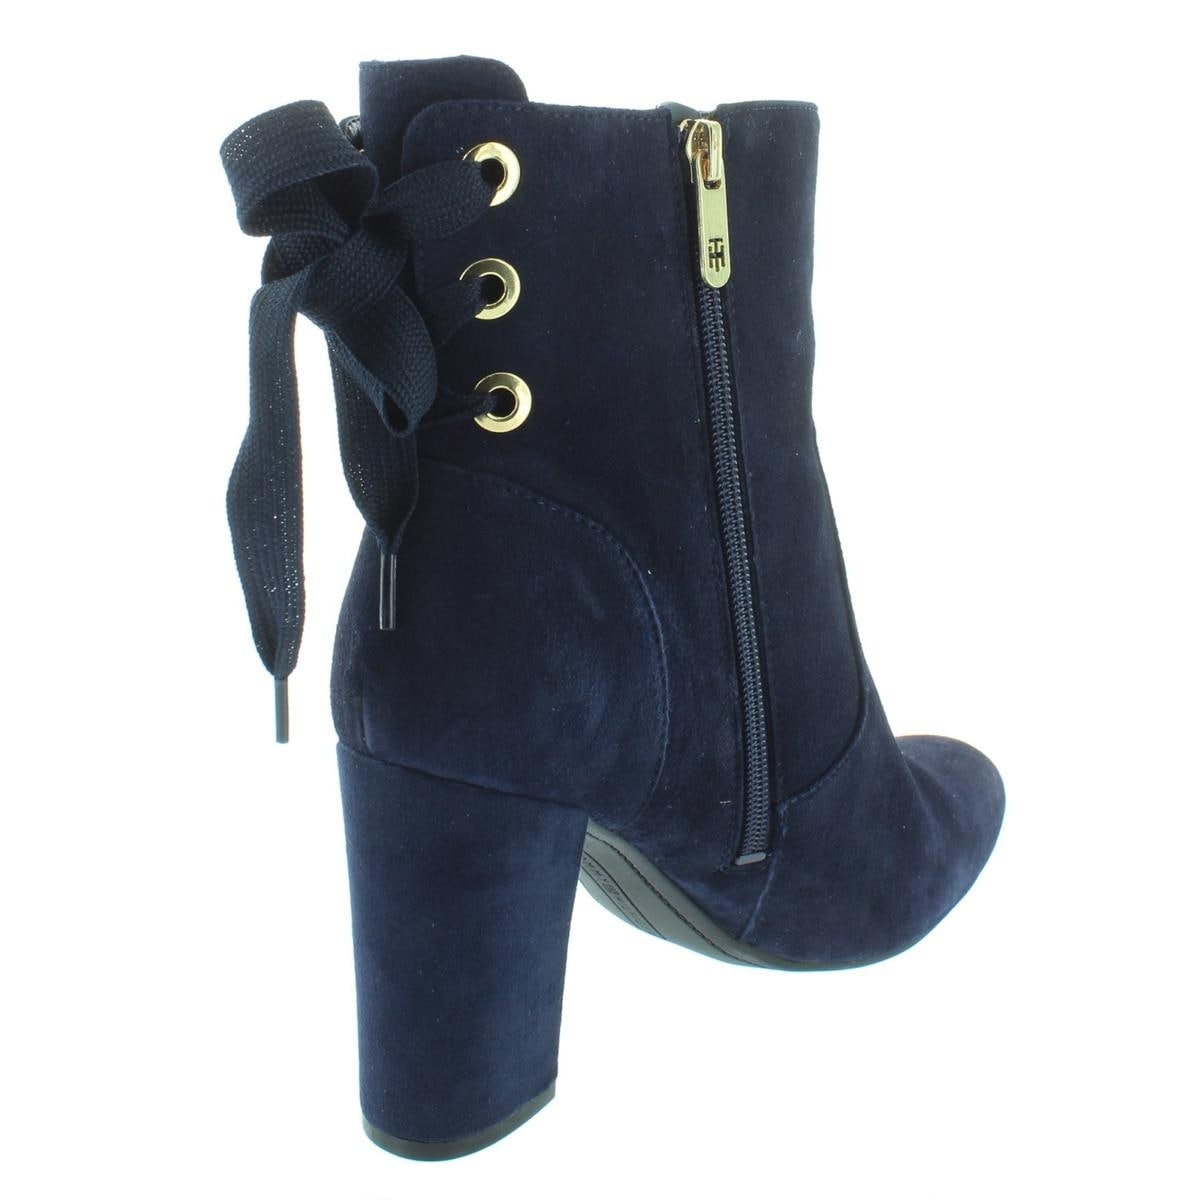 bb80d8f720ed Shop Tommy Hilfiger Womens Divah Ankle Boots Suede Lace-Up - Free Shipping  On Orders Over  45 - Overstock - 25442029